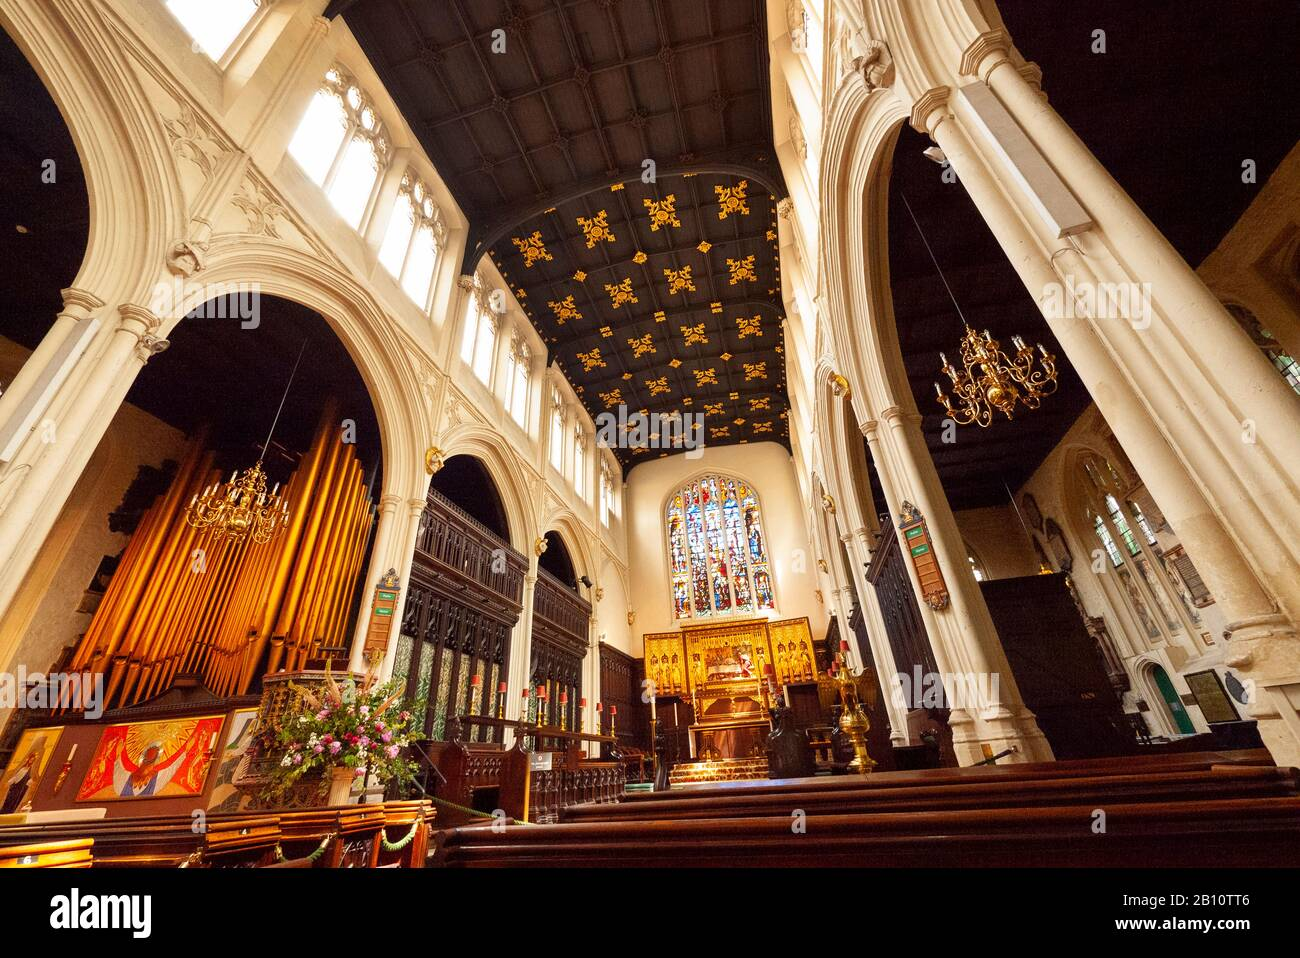 Interior of Saint Margaret's Church showing ceiling and nave, Westminster, London, United Kingdom Stock Photo